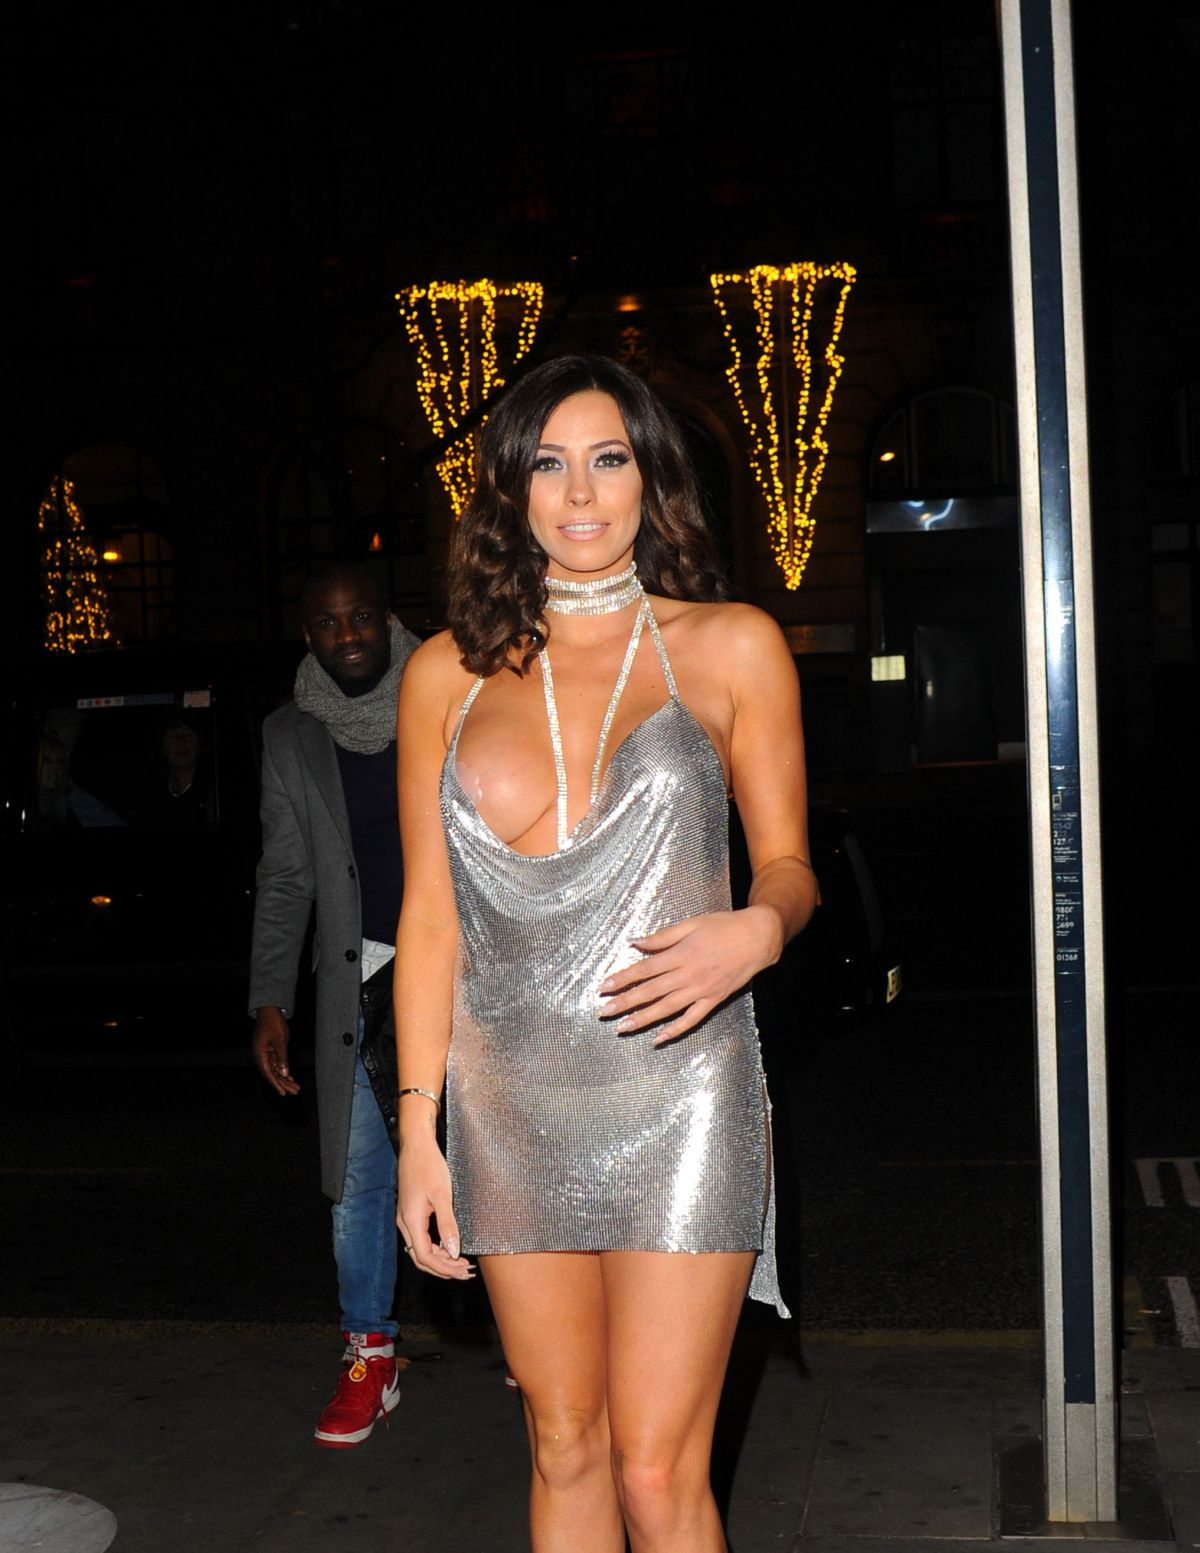 PASCAL CRAYMER at Sixty6 Magazine Launch Party in London 12/07/2016